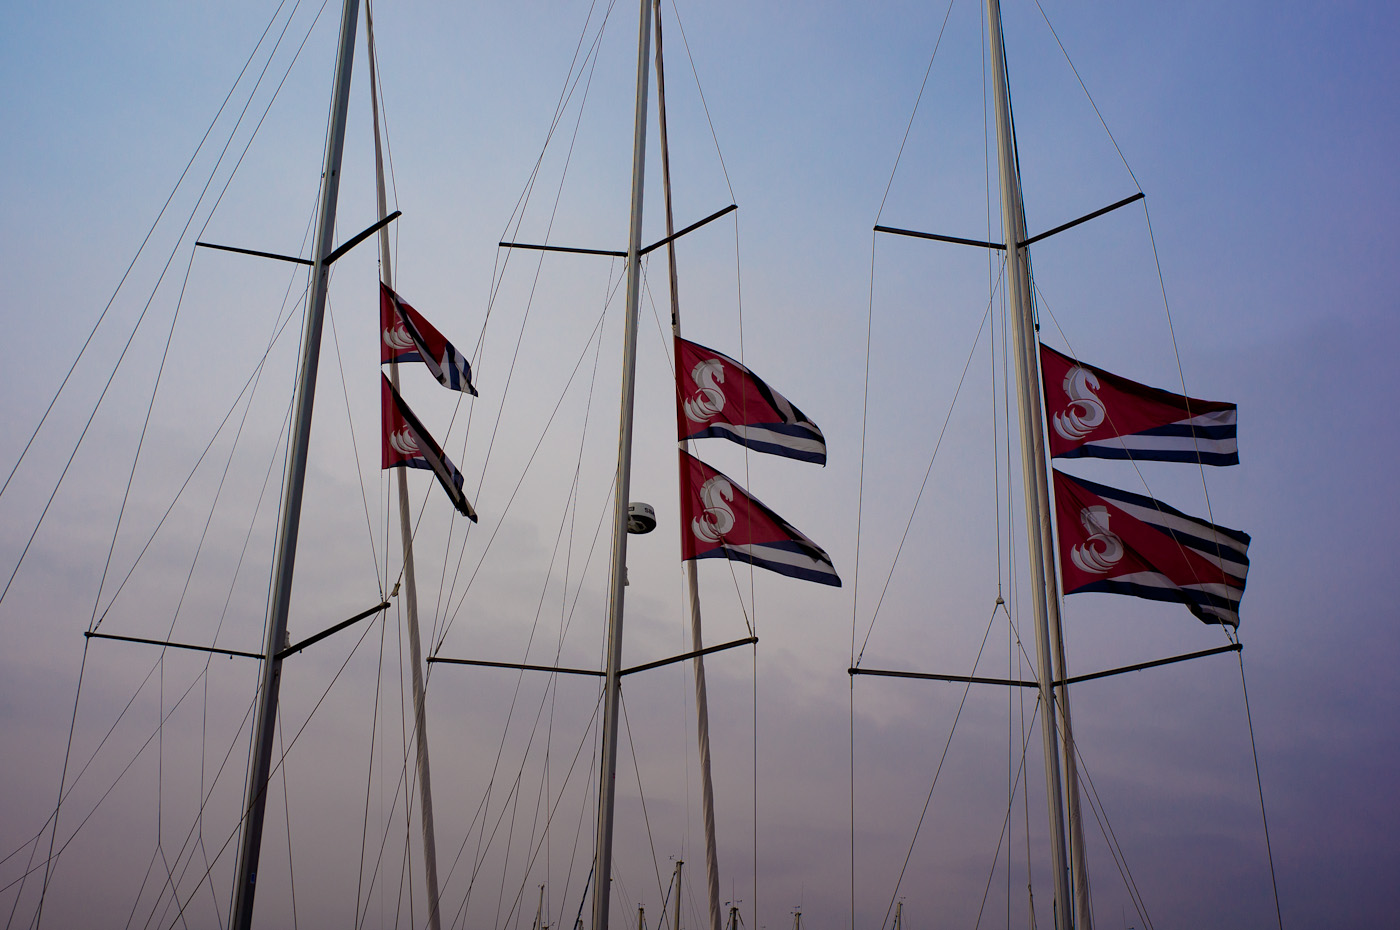 Red flags on sail boast in La Ciotat harbour